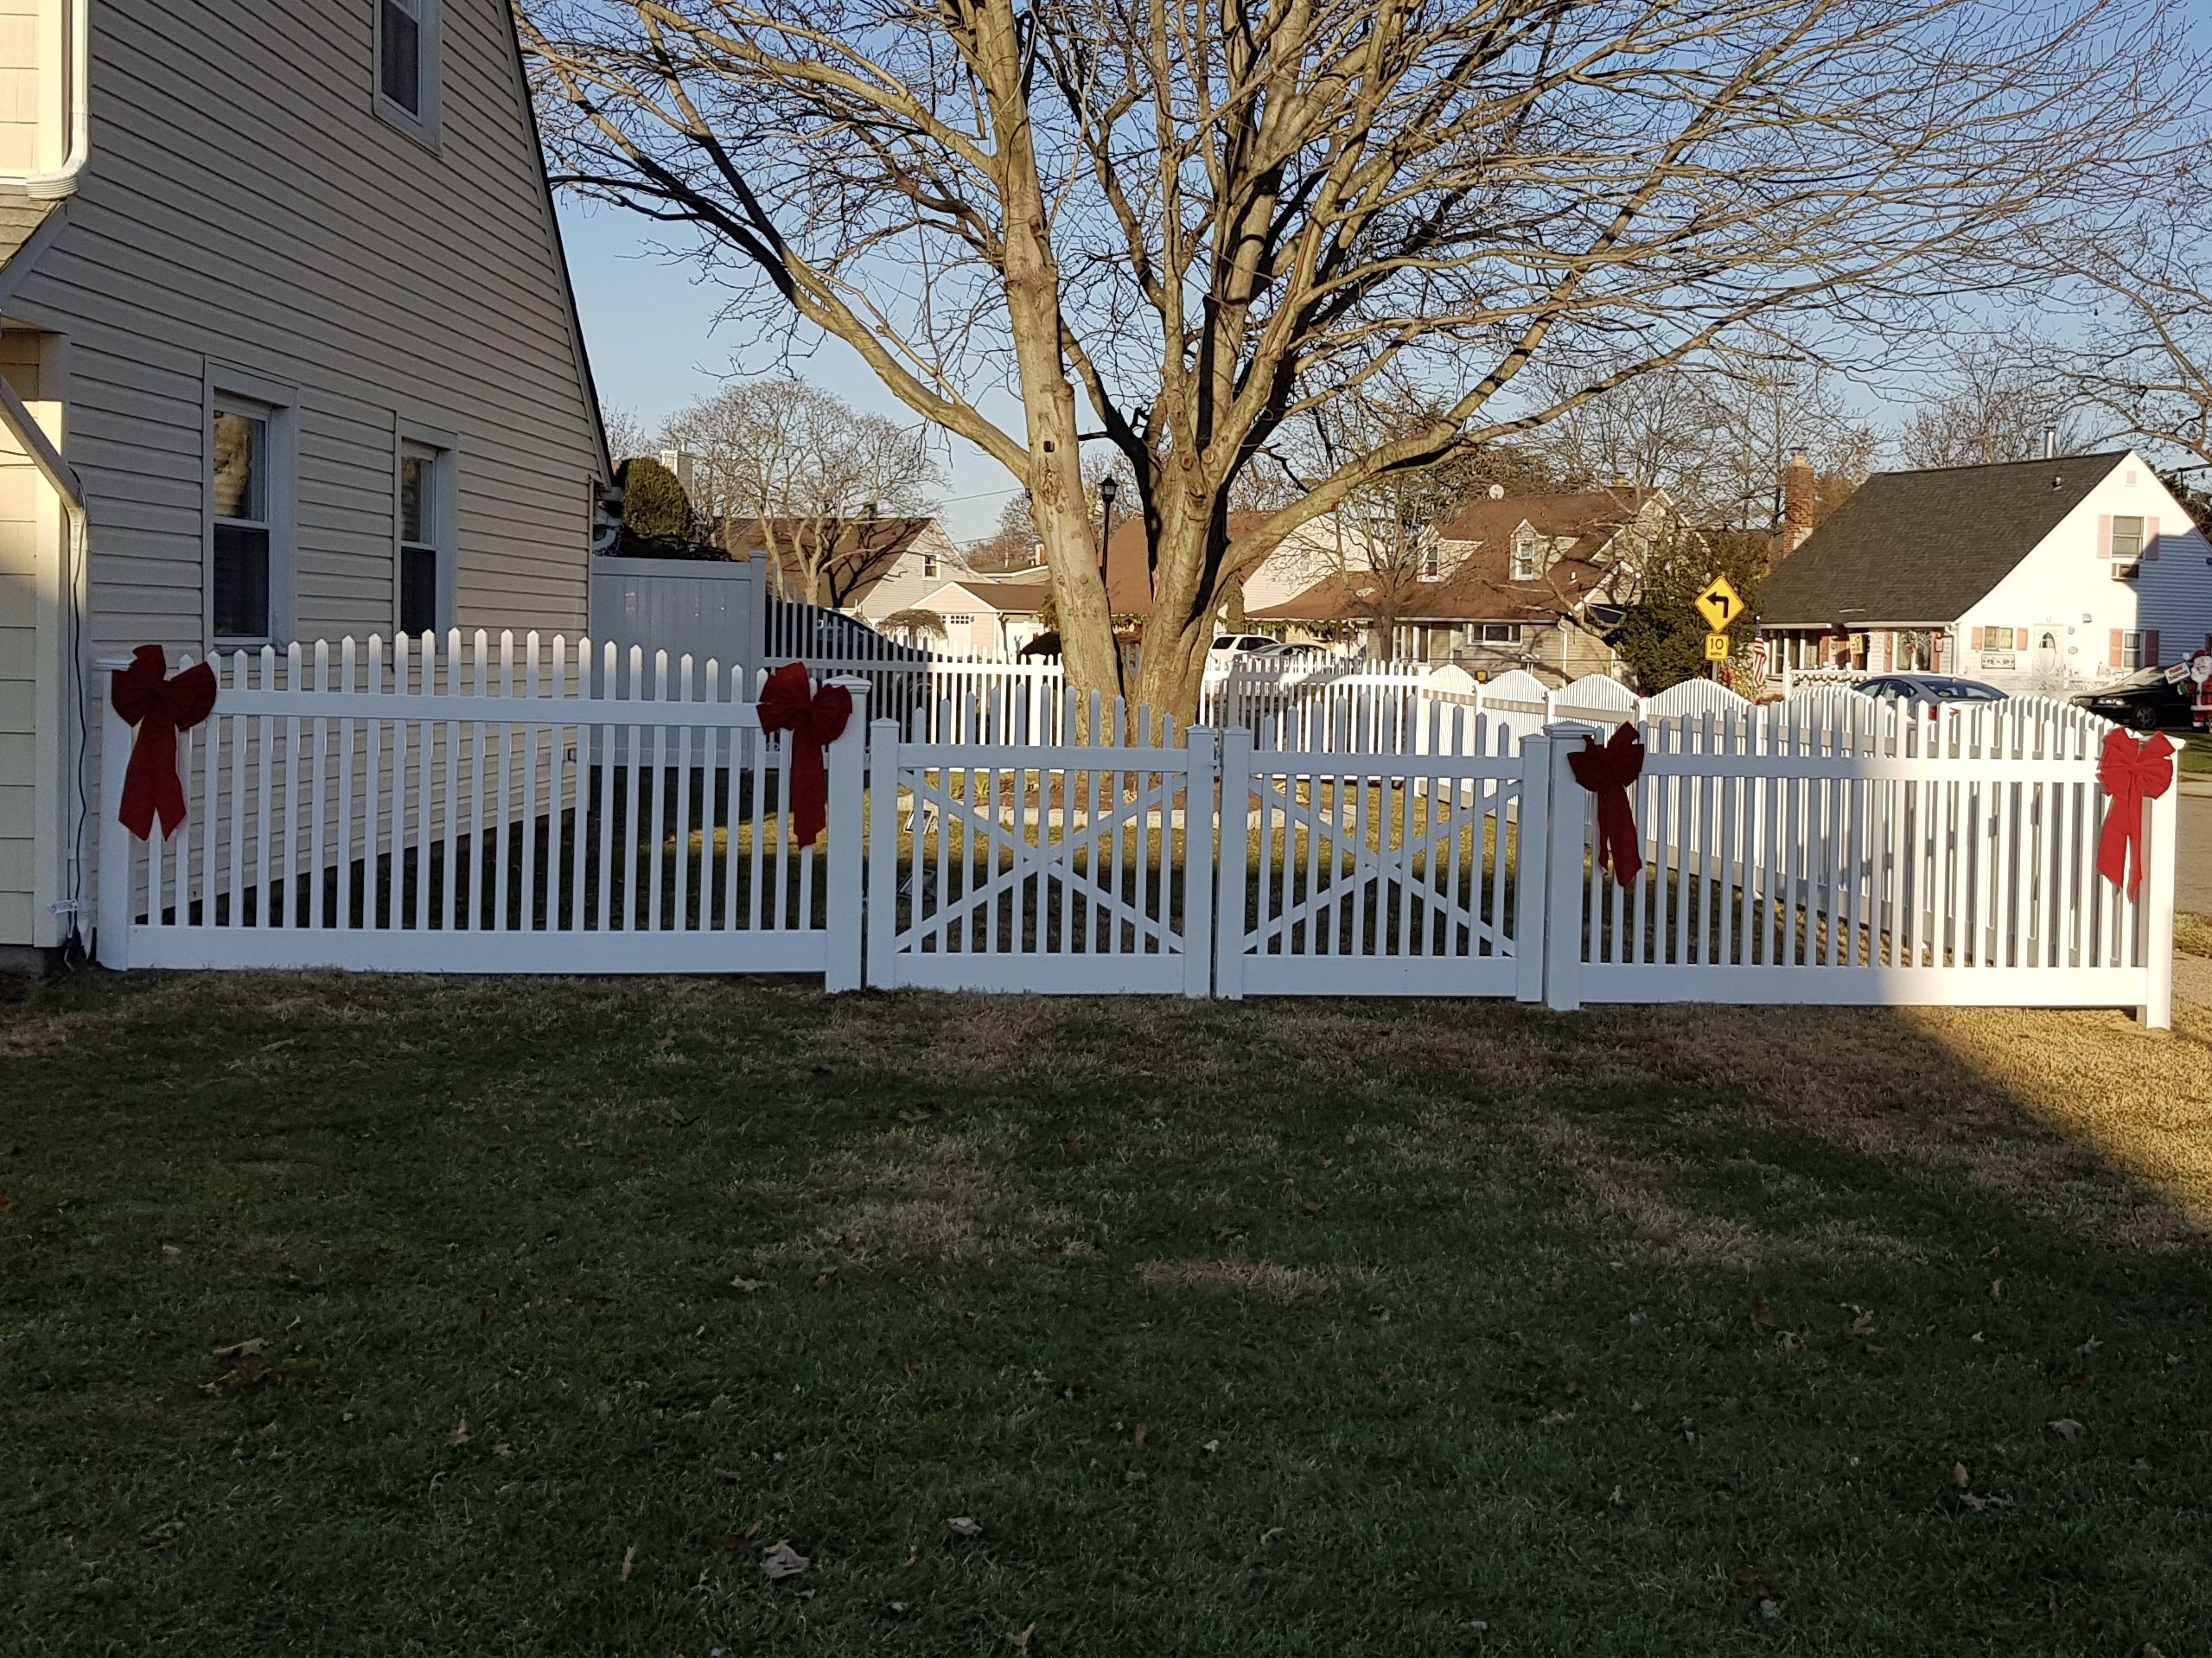 Pvc Convex Saturn Scallop Fence And Double Gates Installed By Liberty Fence Railing Double Virgin Vinyl Gates And Railings Gate Fence